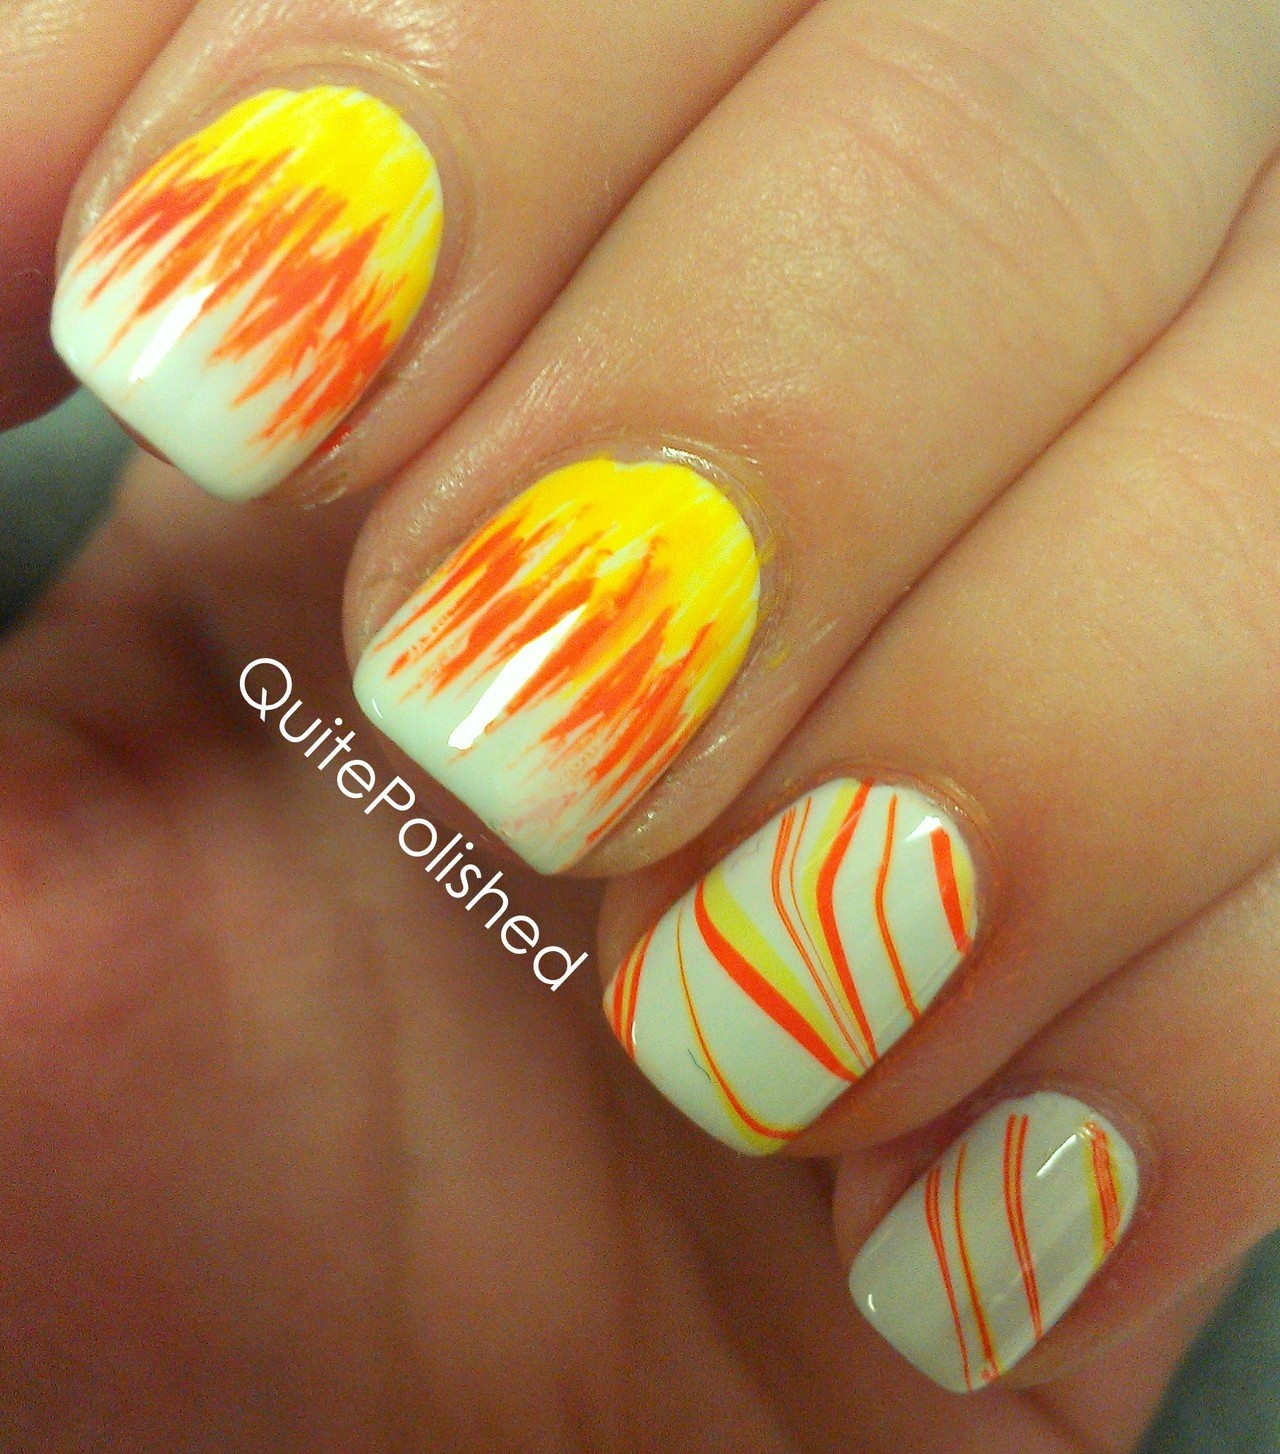 quitepolished:  I wasn't really digging how the candy corn came out, so I went with something a bit more abstract. I really like the contrast between the brushstrokes and the water marble.